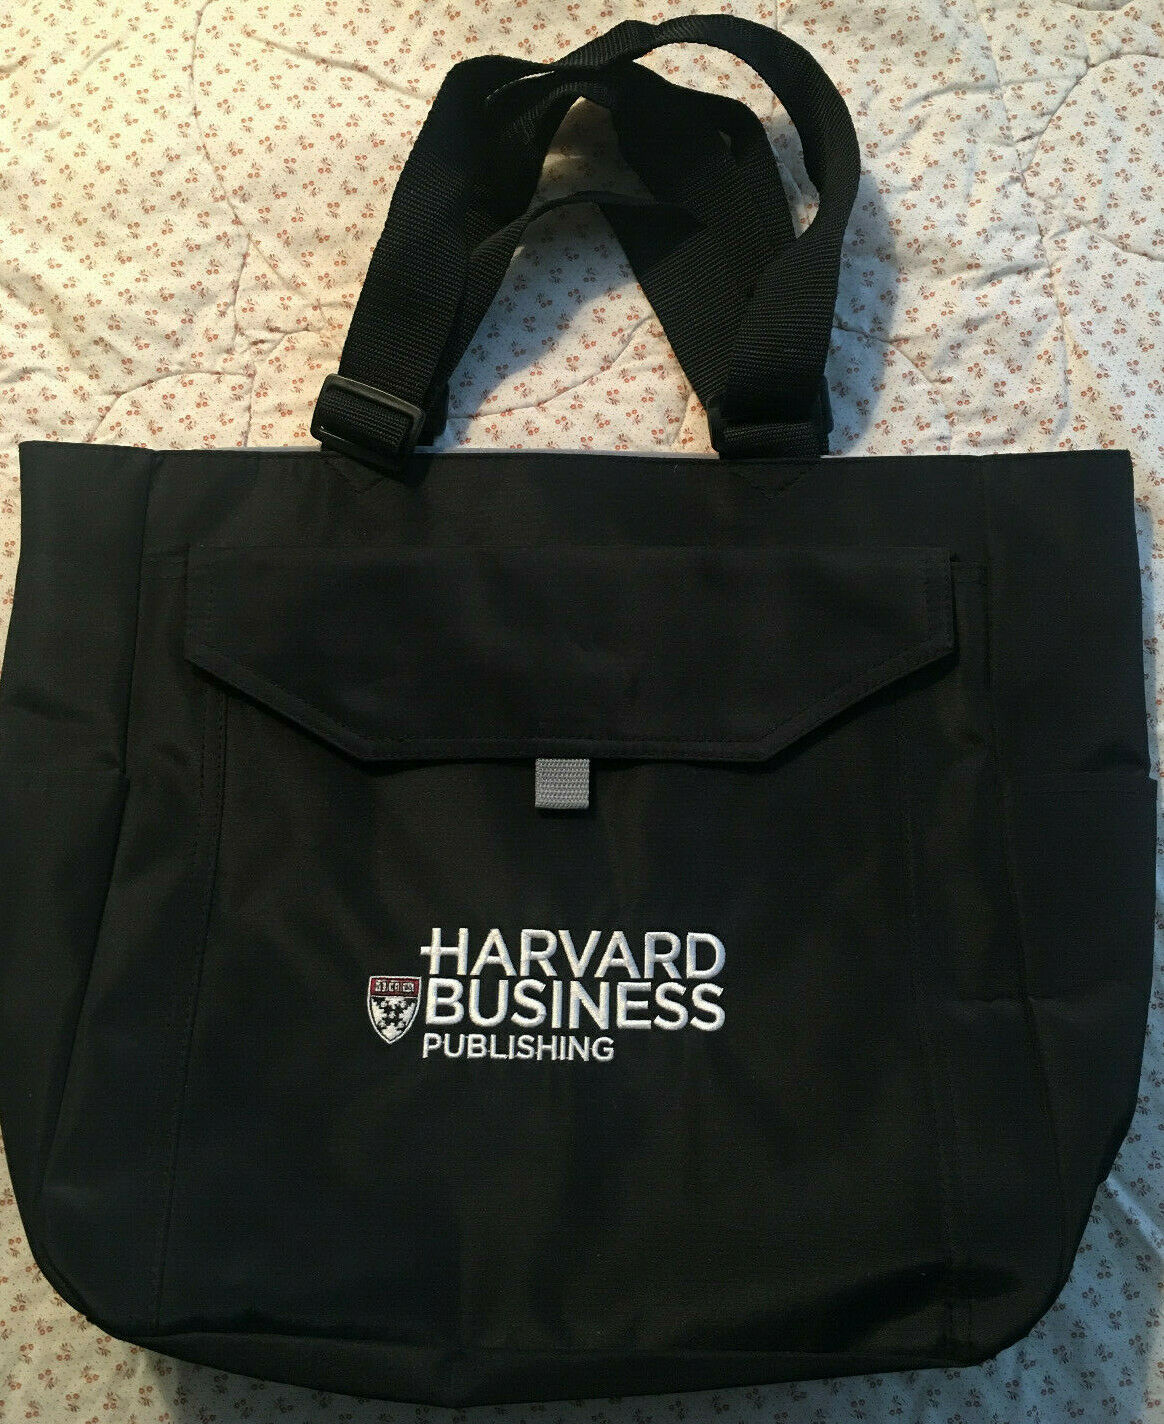 HARVARD Business Publishing Tote, Laptop, Business Carry Bag